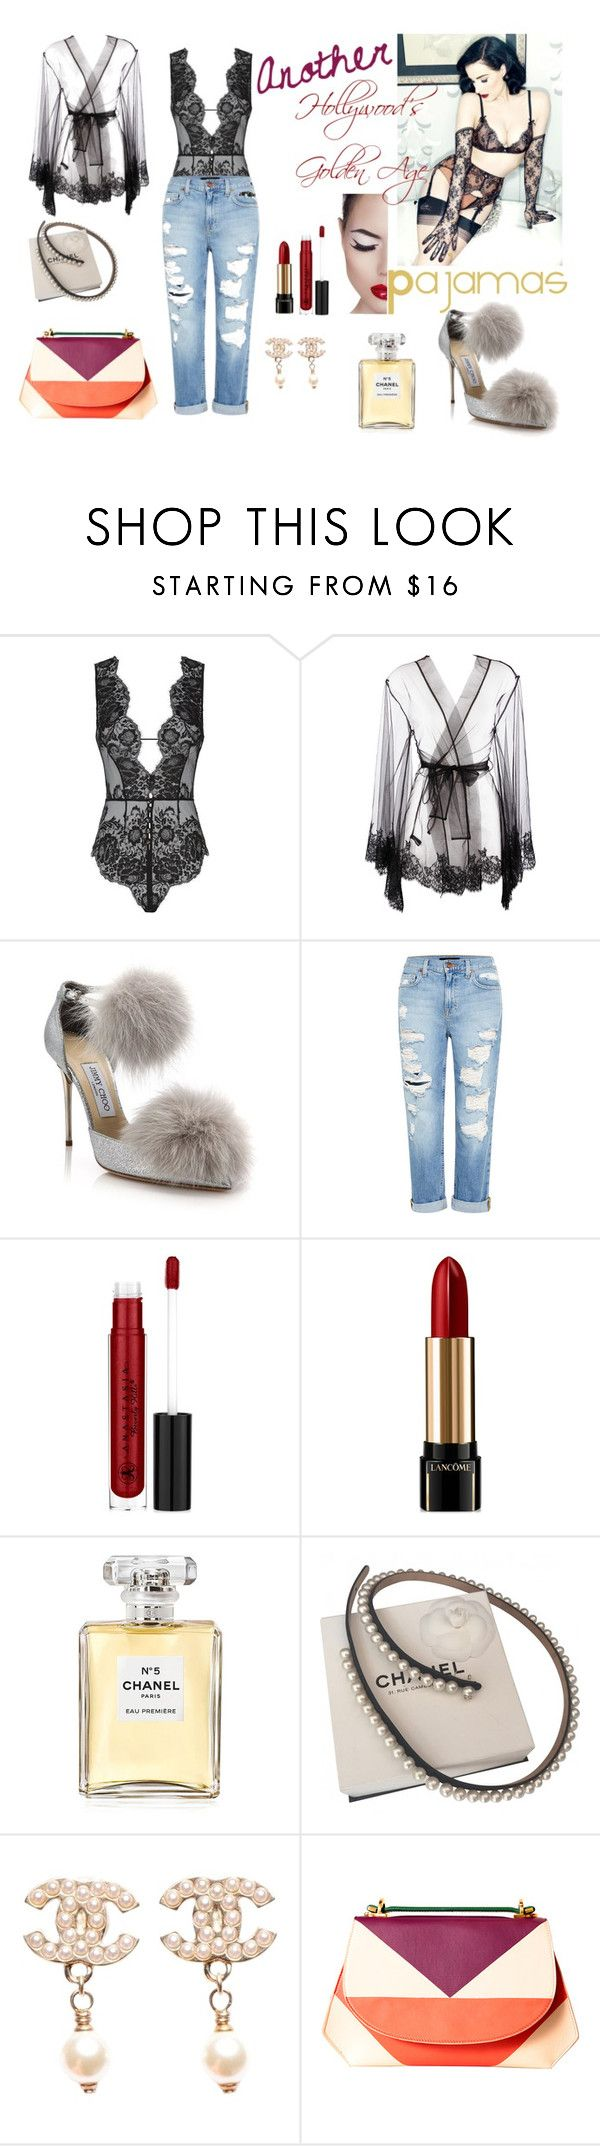 """Another ""Hollywood's Golden Age"""" by davidlorent ❤ liked on Polyvore featuring Agent Provocateur, I.D. SARRIERI, Jimmy Choo, Genetic Denim, Dita Von Teese, Anastasia Beverly Hills, Lancôme, Chanel, DESA and modern"